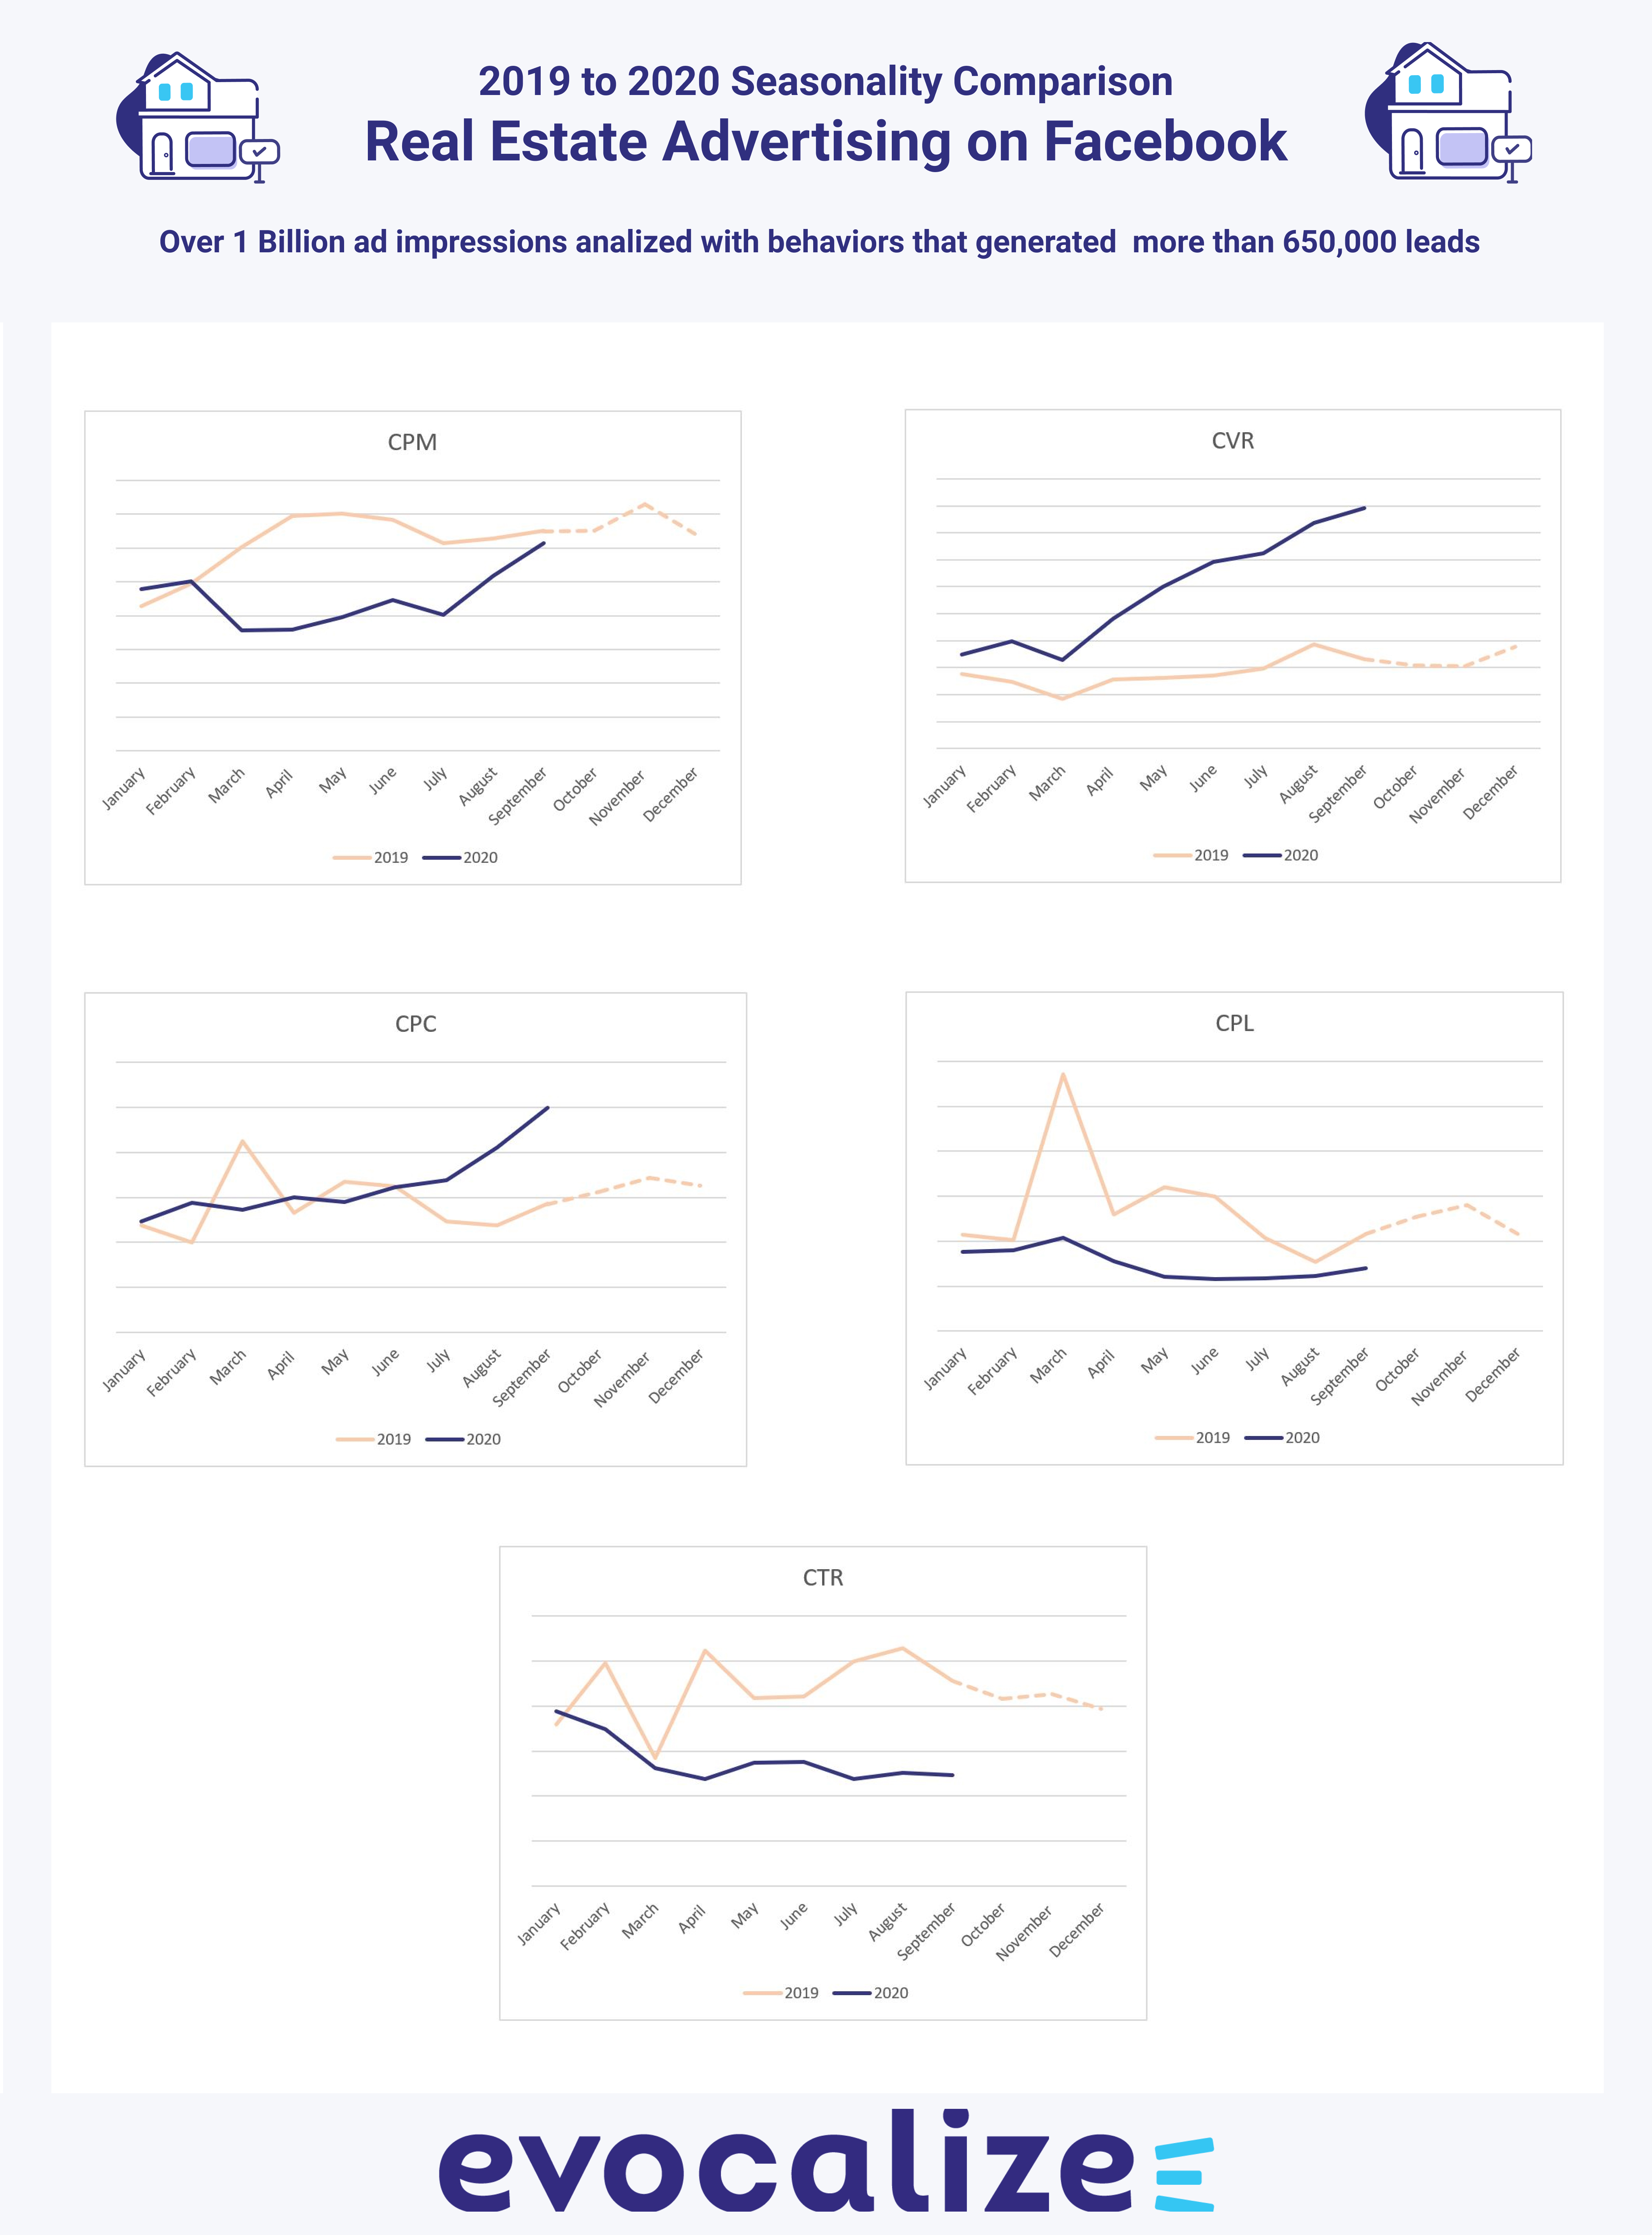 Real Estate Advertising on Facebook YoY Trend Lines